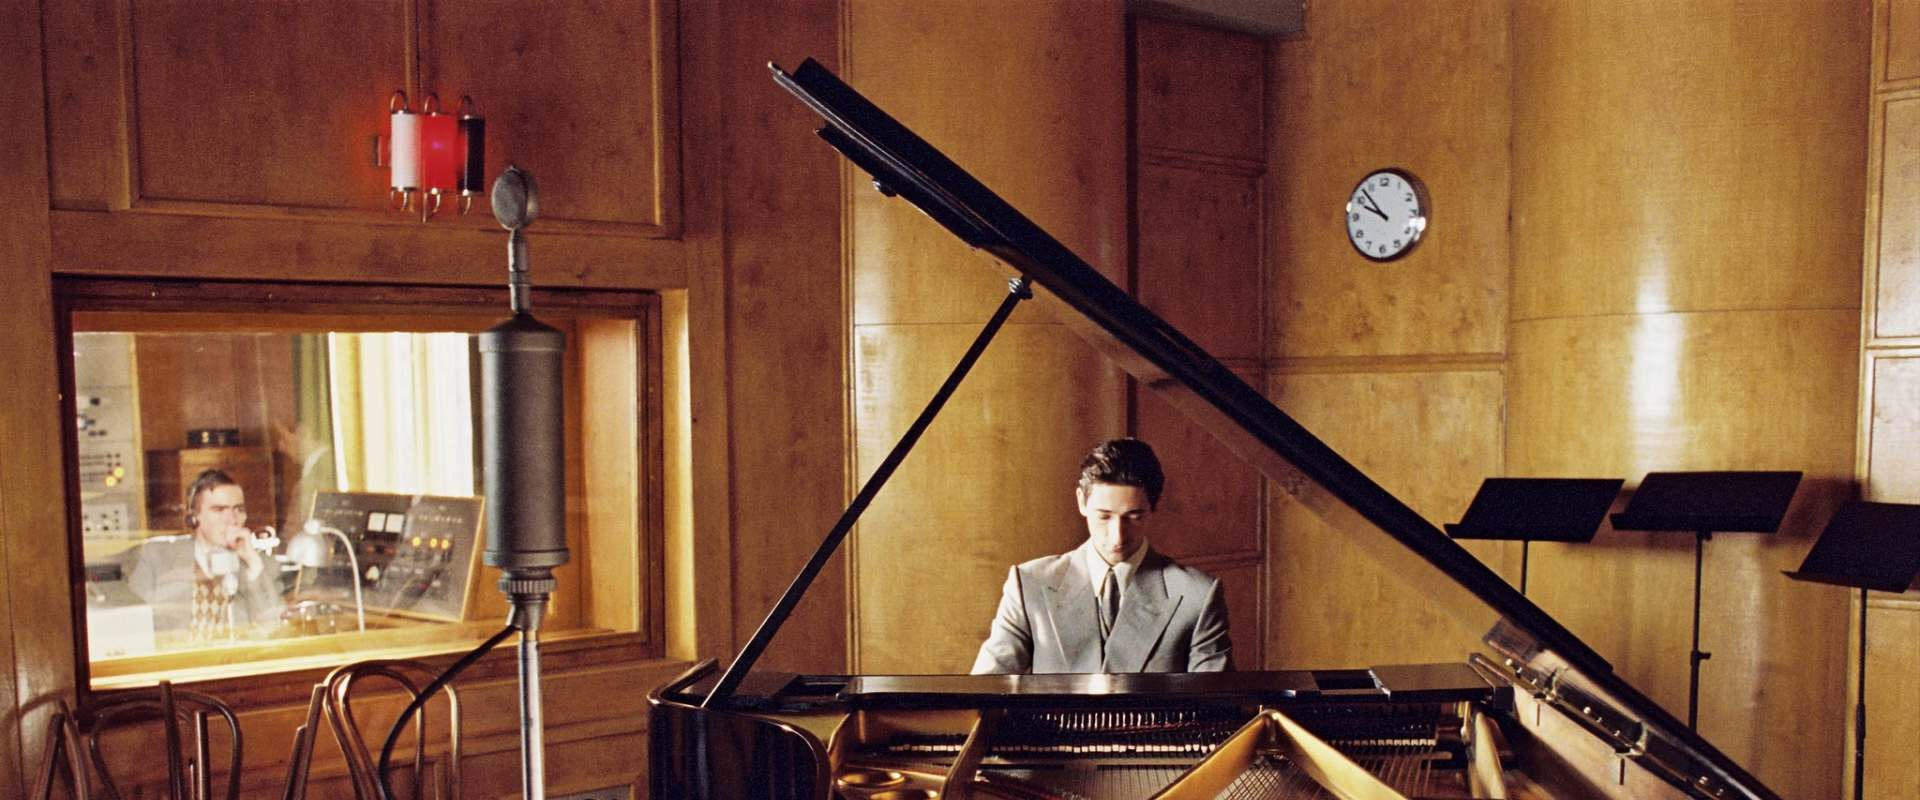 The Pianist background 2